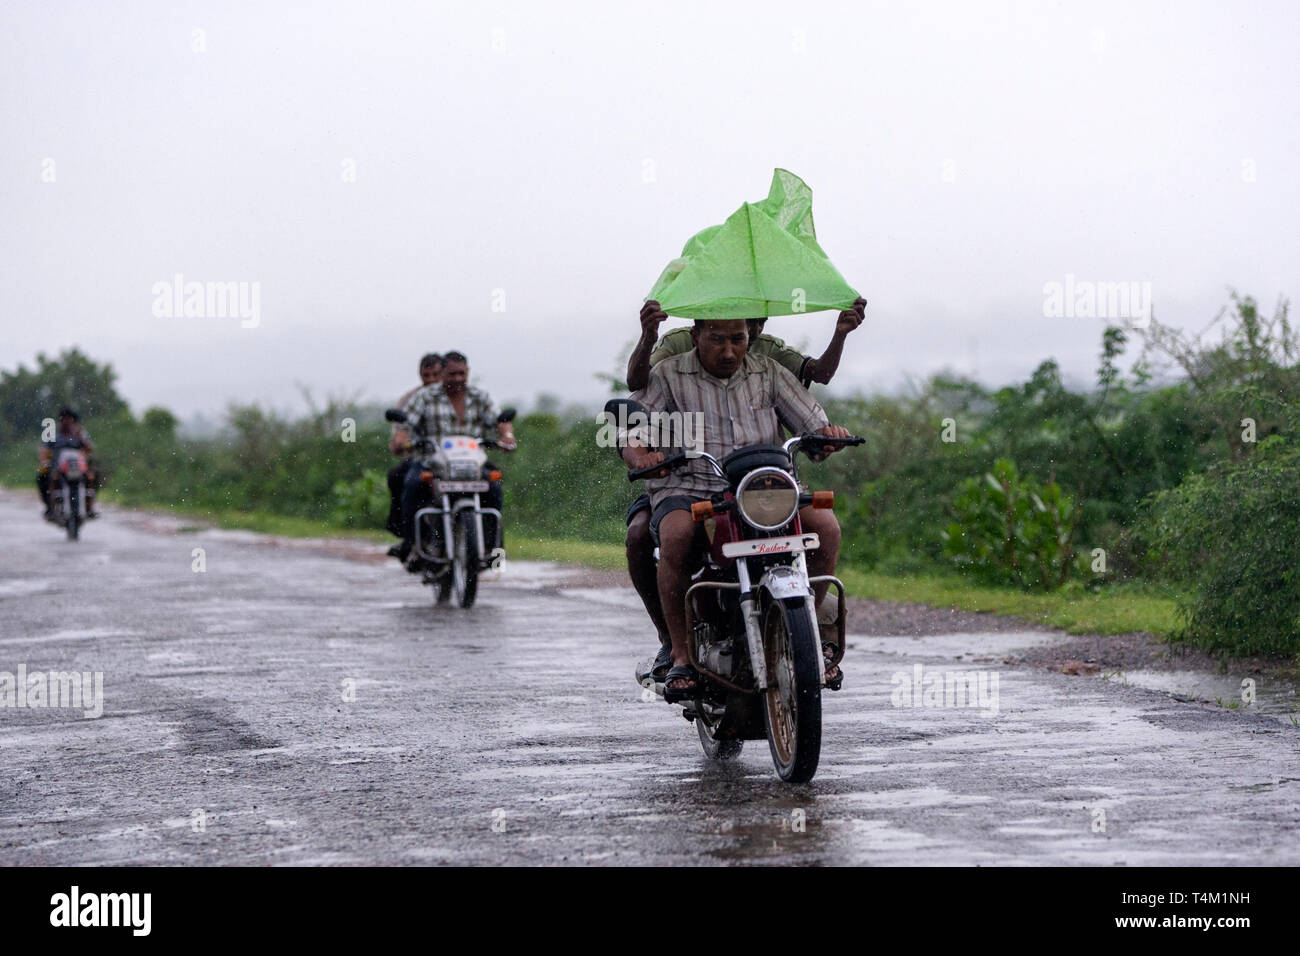 Bikers protecting with plastic bag the heavy rain in Rajasthan, India Stock Photo